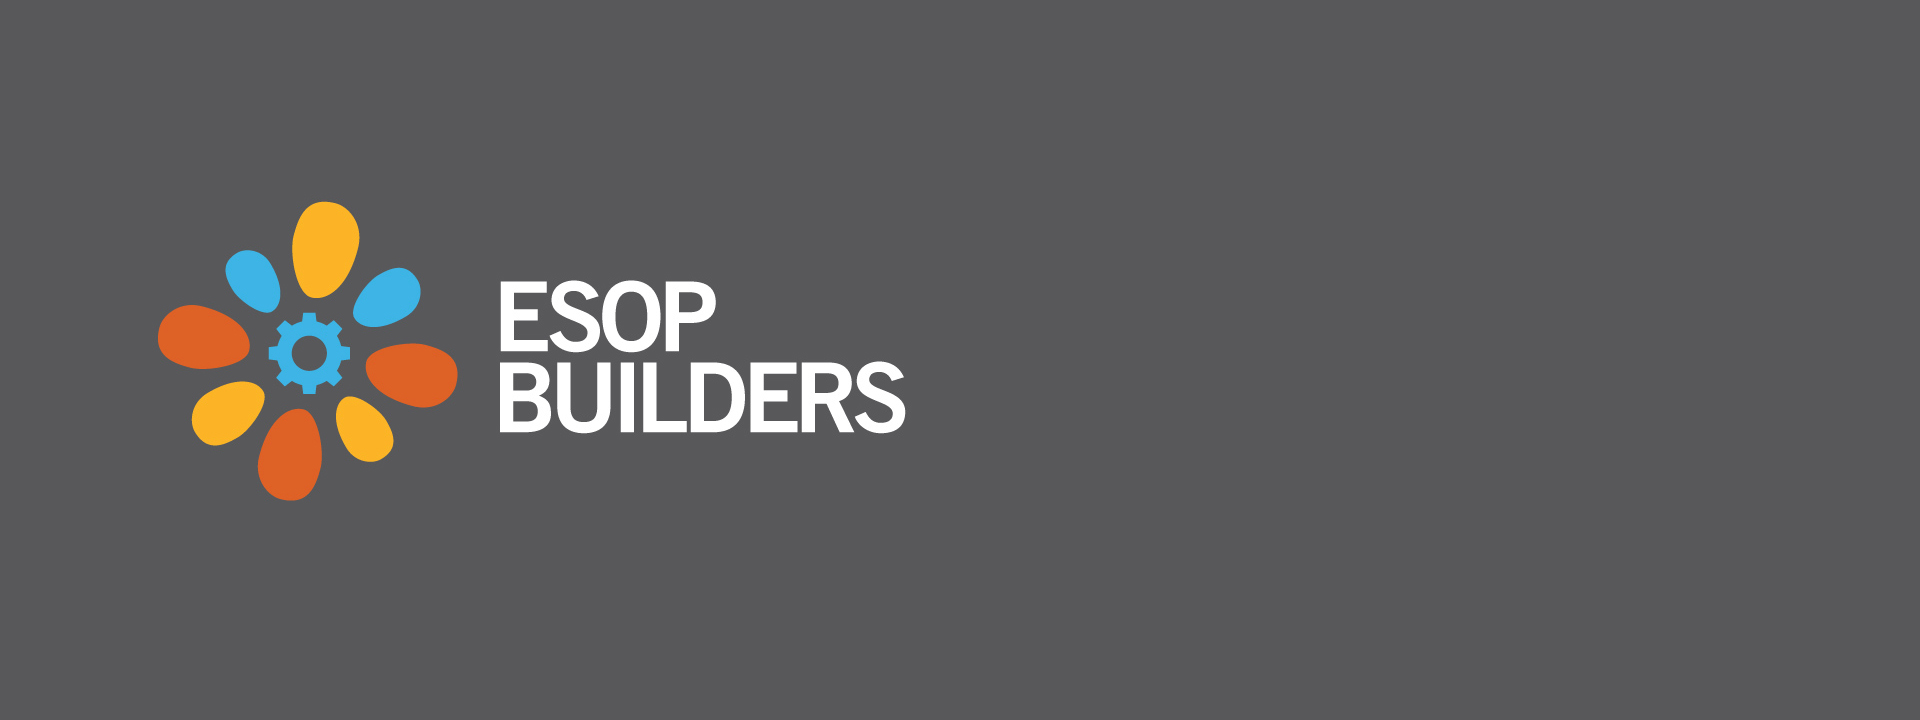 Employee share ownership plan financing esop canada for Share builders plan